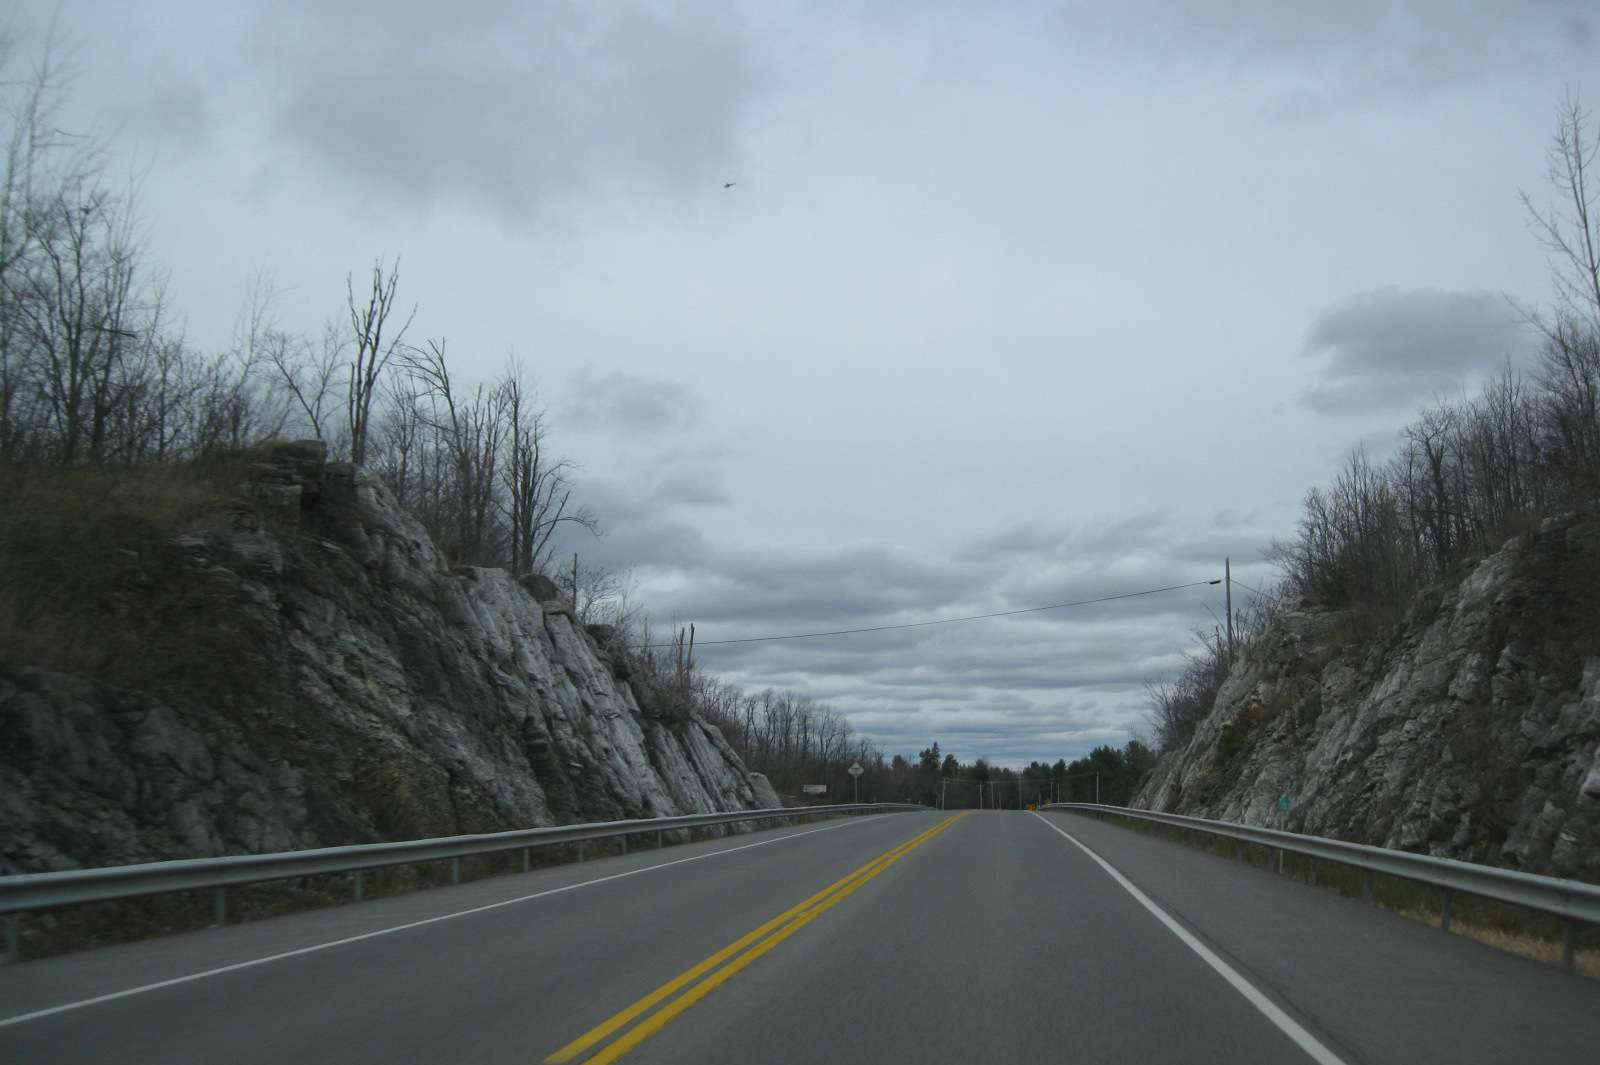 Rocks and trees along Route 812 on dreary day